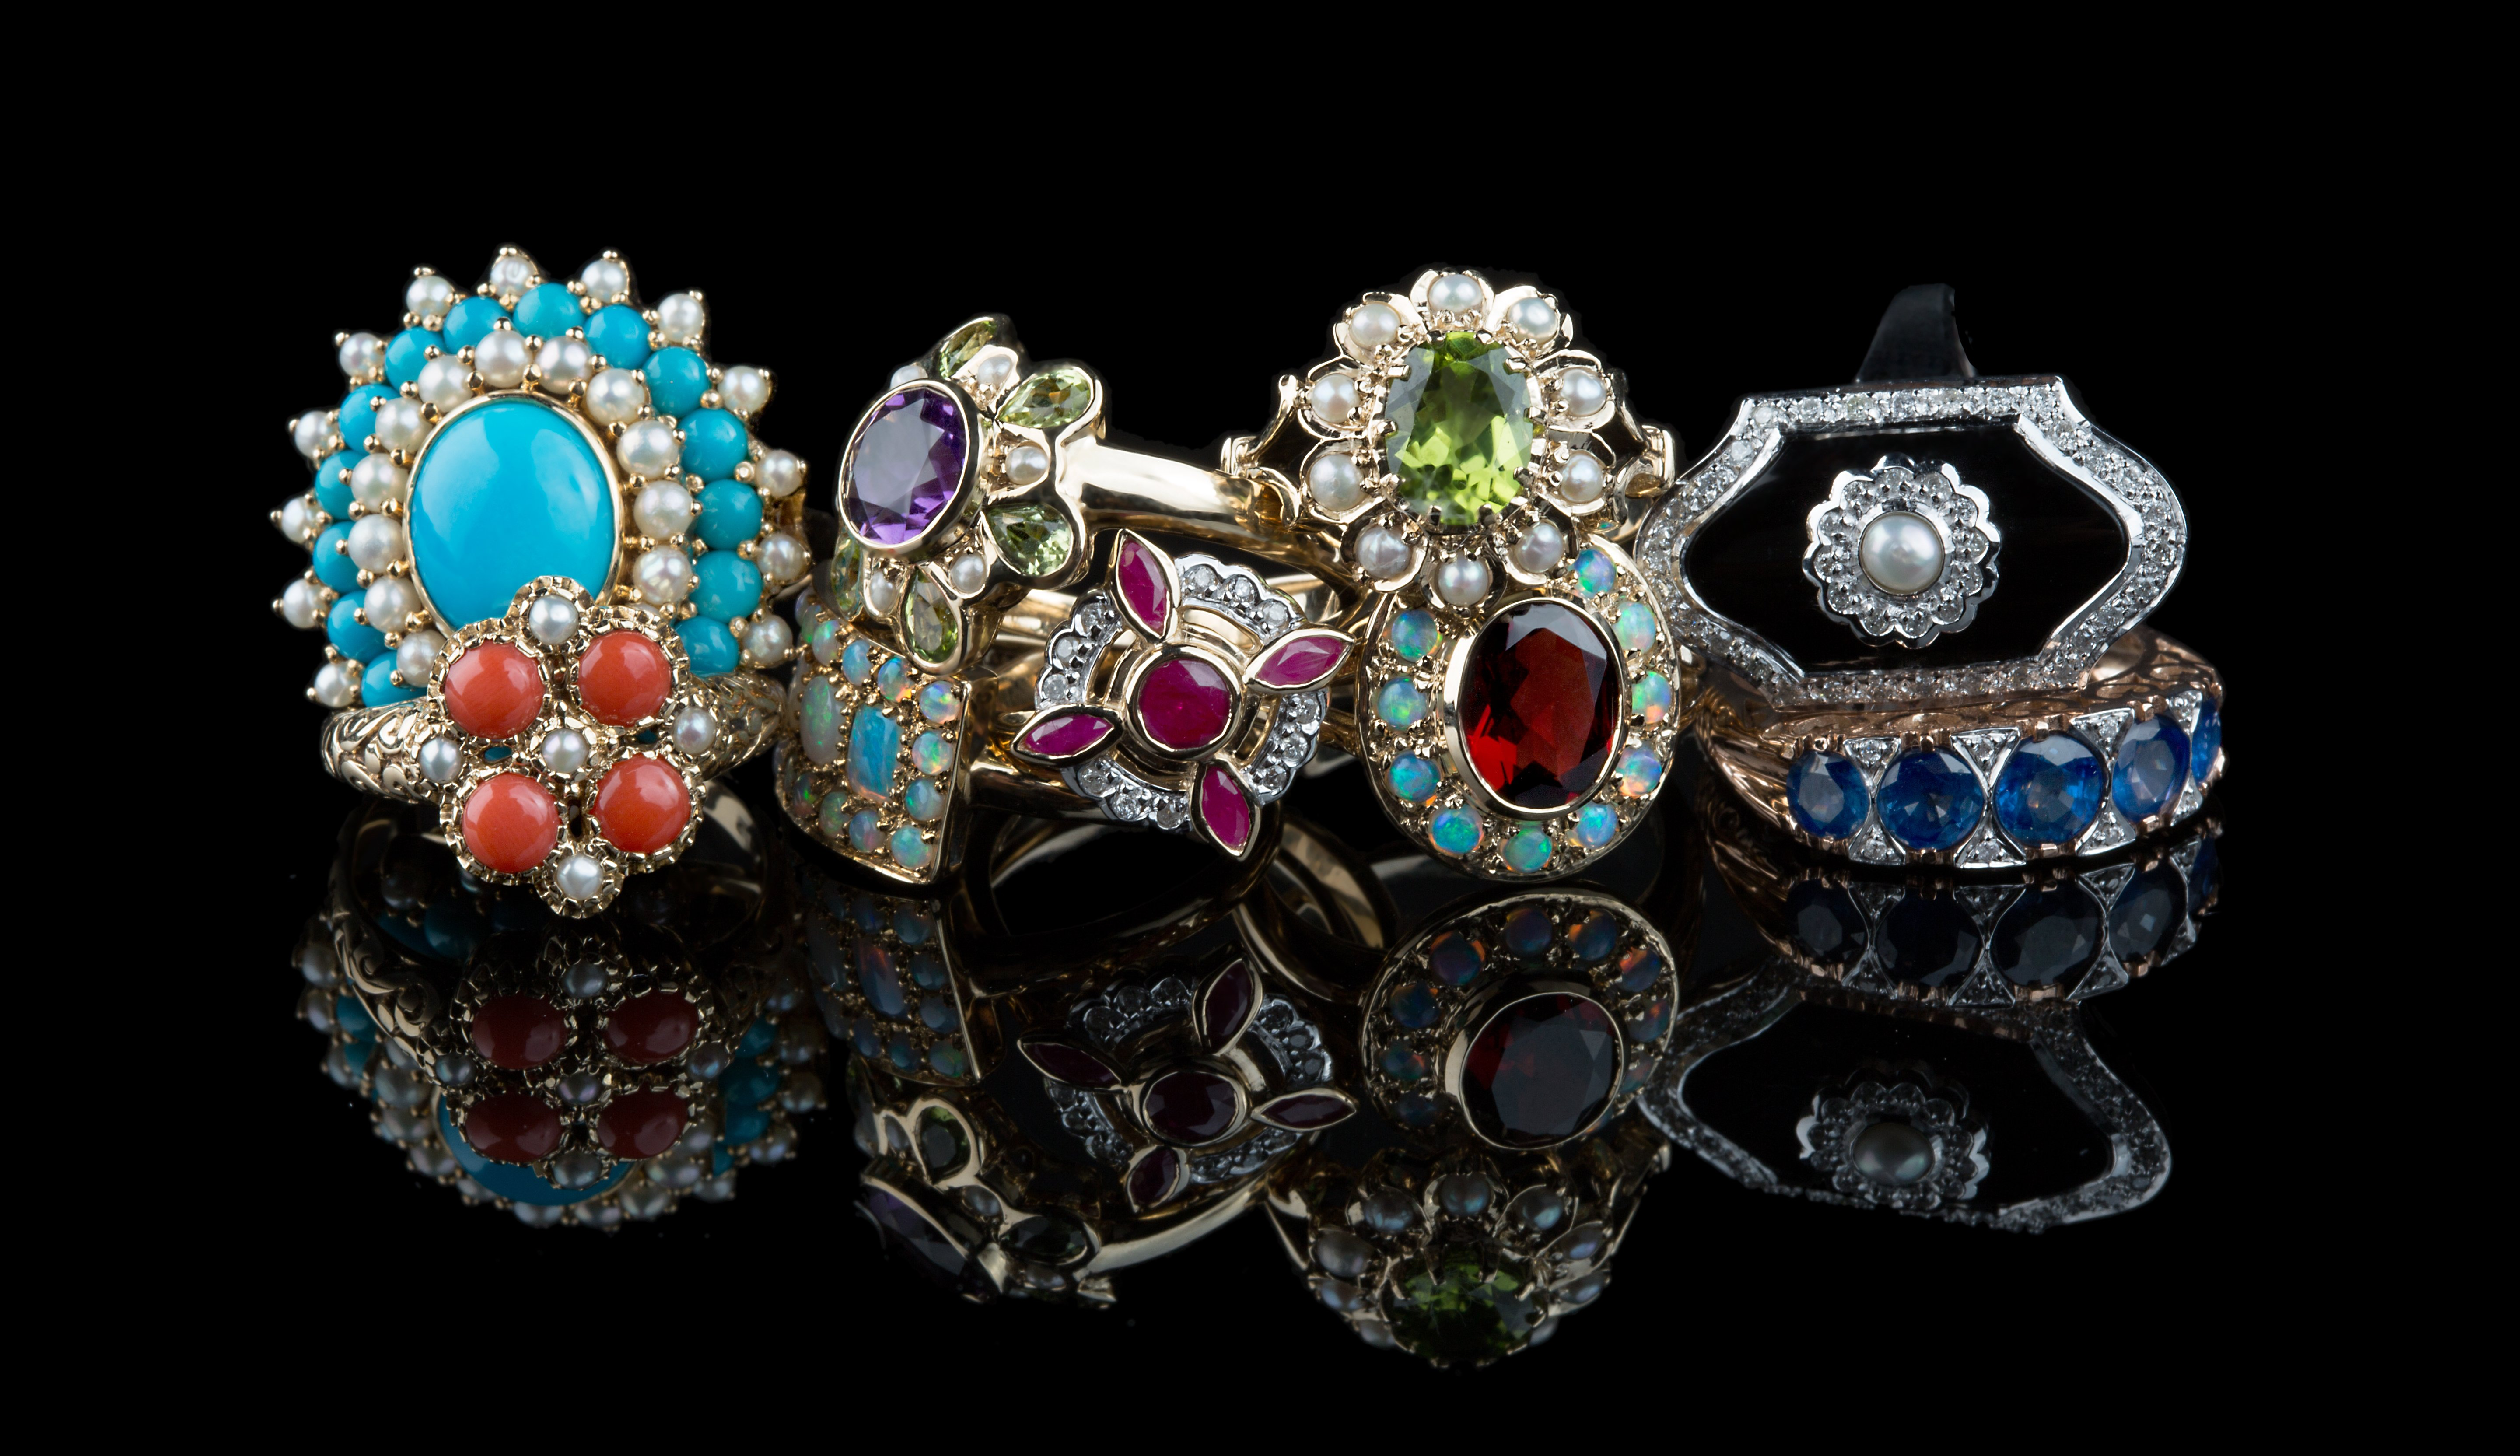 A selection of vintage jewellery